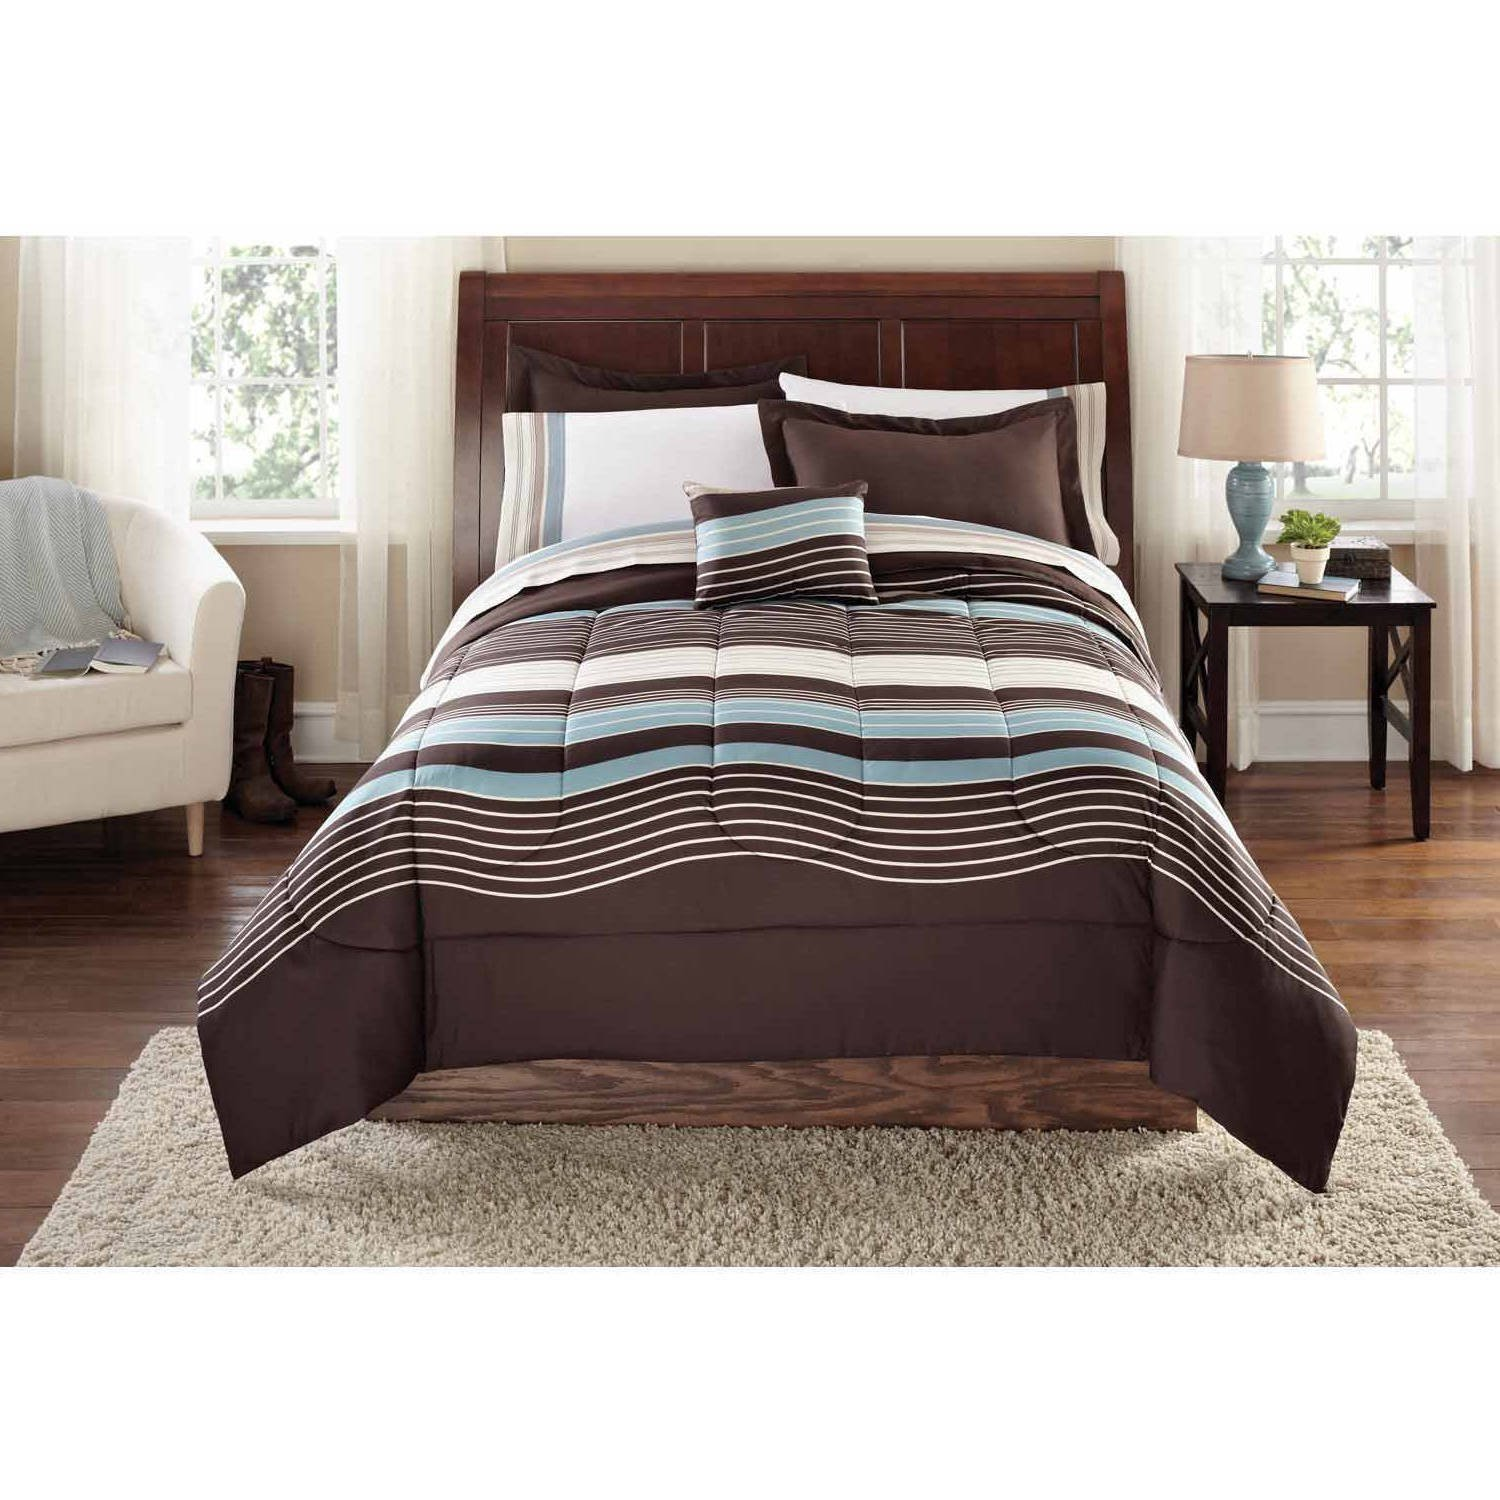 8 Piece Dark Brown Boys Rugby Stripes Pattern Comforter Set Full With Sheets, Beautiful Sports Striped Nautical Theme, Horizontal Cabana Lines, Vibrant Sky Blue Brown, Polyester Microfibre